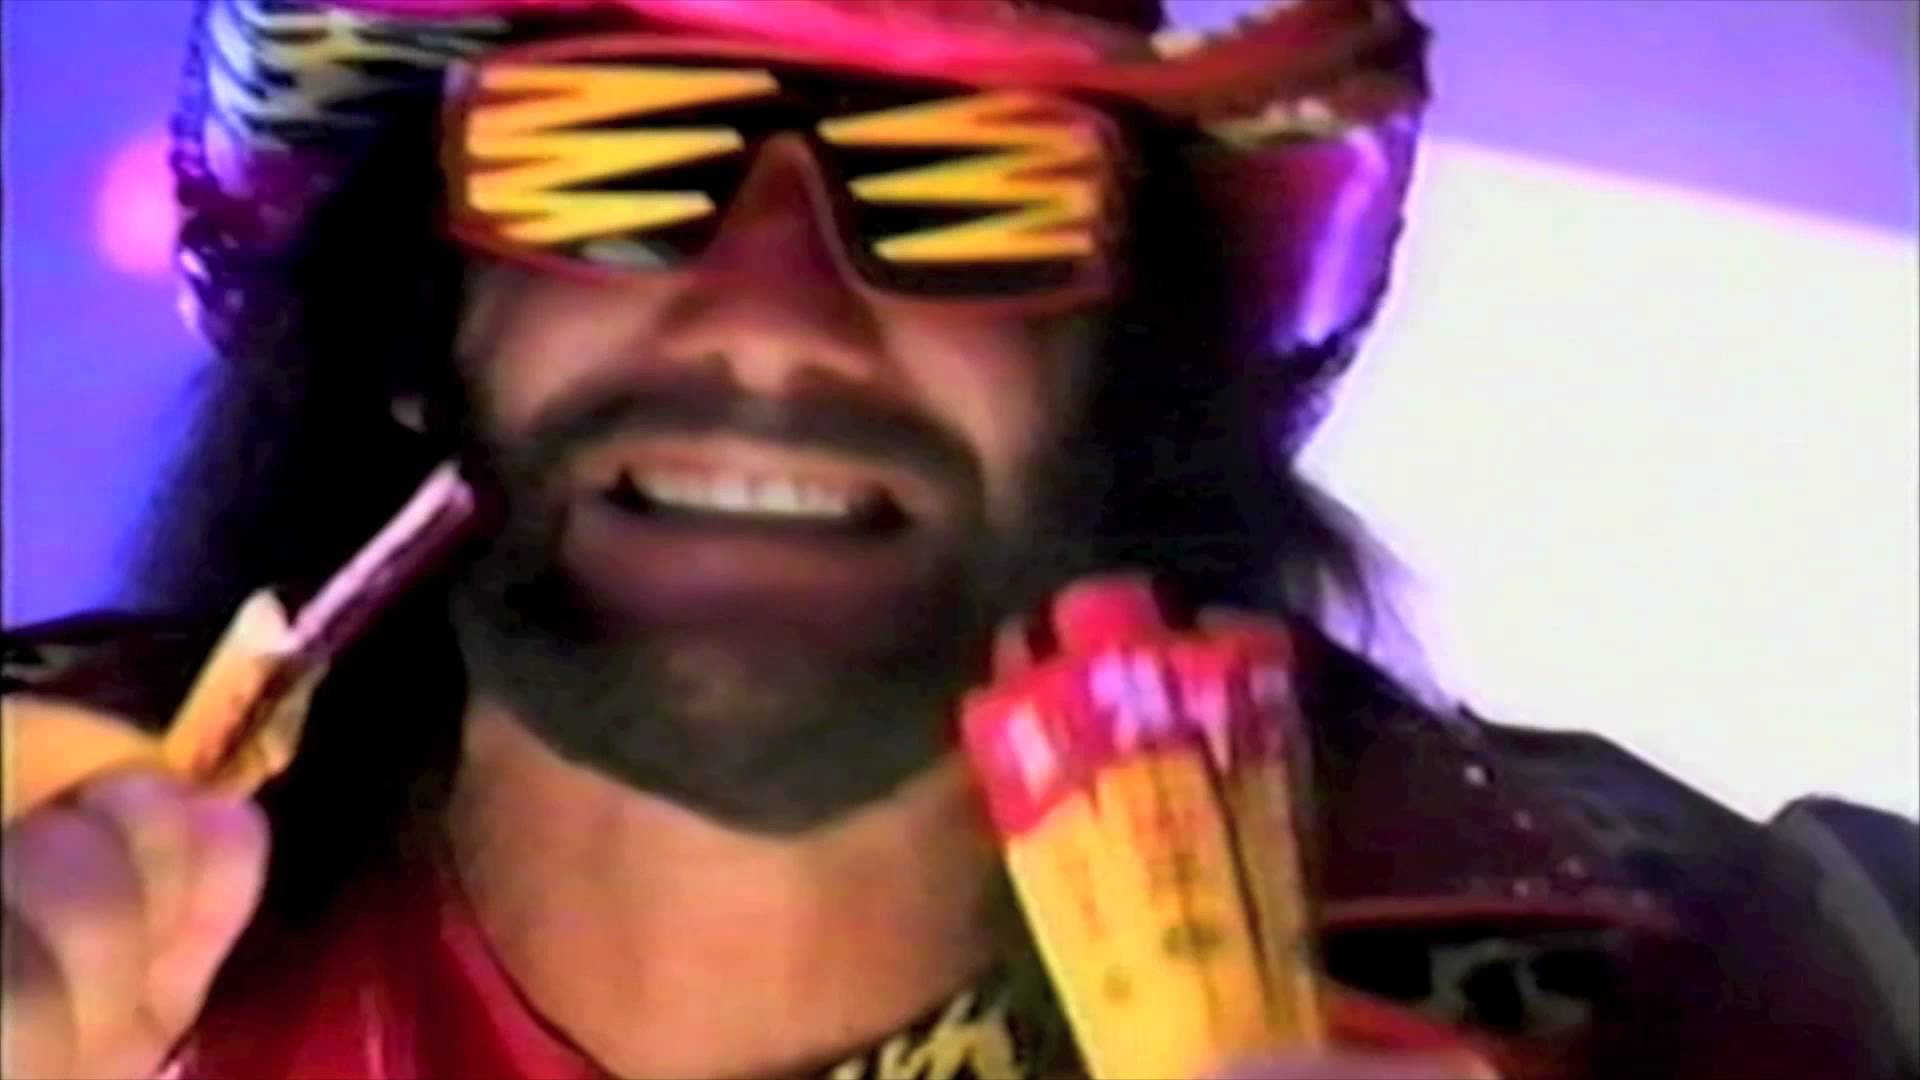 randy savage dating Randall mario poffo, (november 15, 1952 – may 20, 2011), better known by his ring name macho man randy savage, was a professional wrestler who achieved prominence in the world wrestling federation and later world championship wrestling.